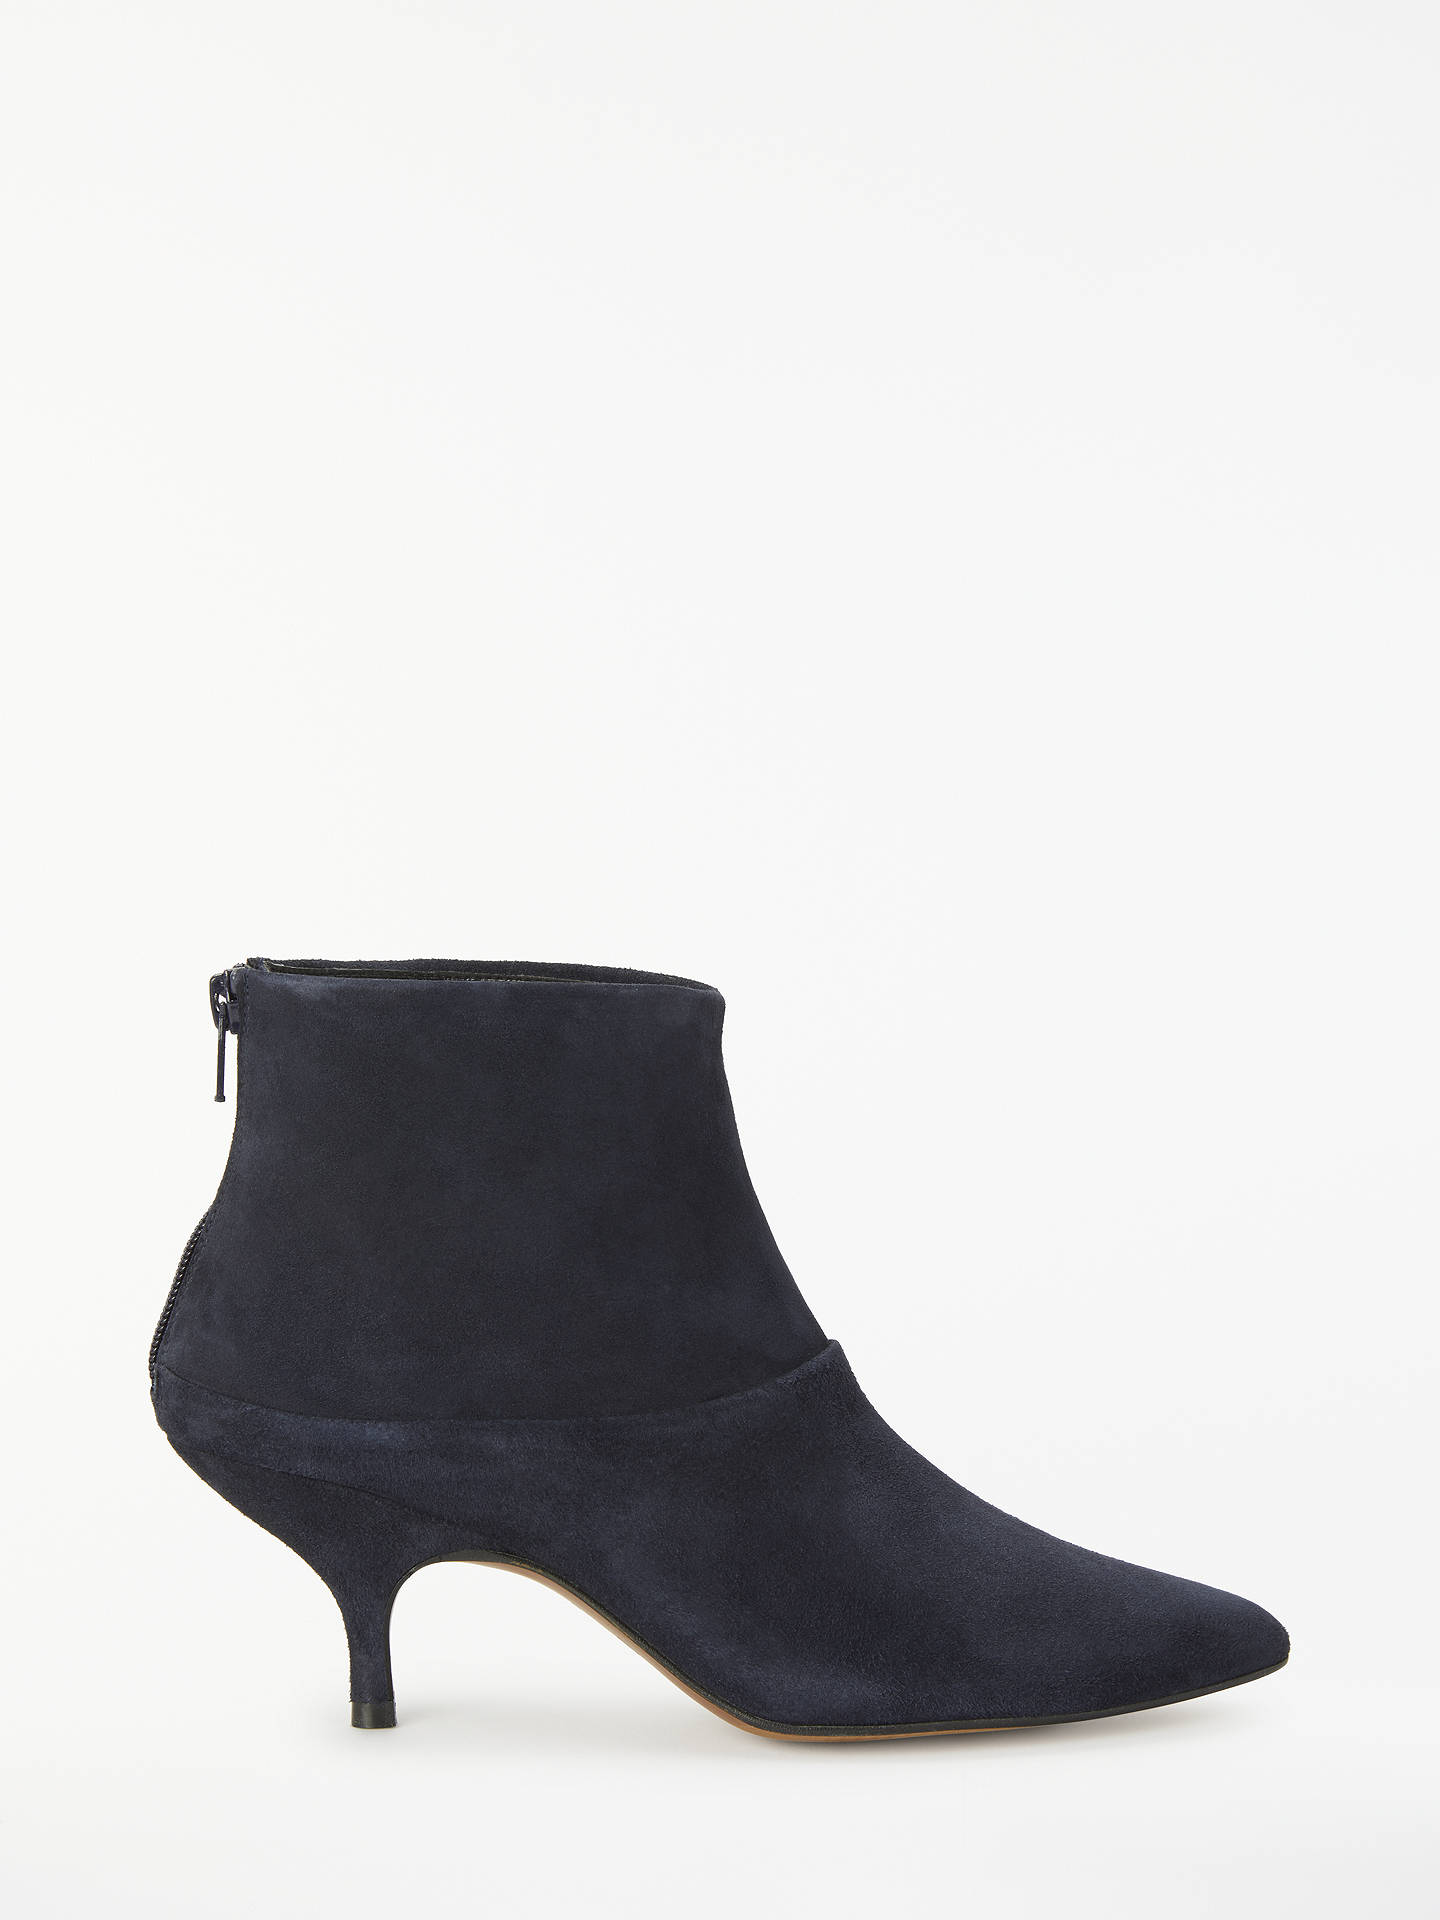 1c0e850708c Finery Erica Kitten Heel Ankle Boots, Navy Suede at John Lewis ...